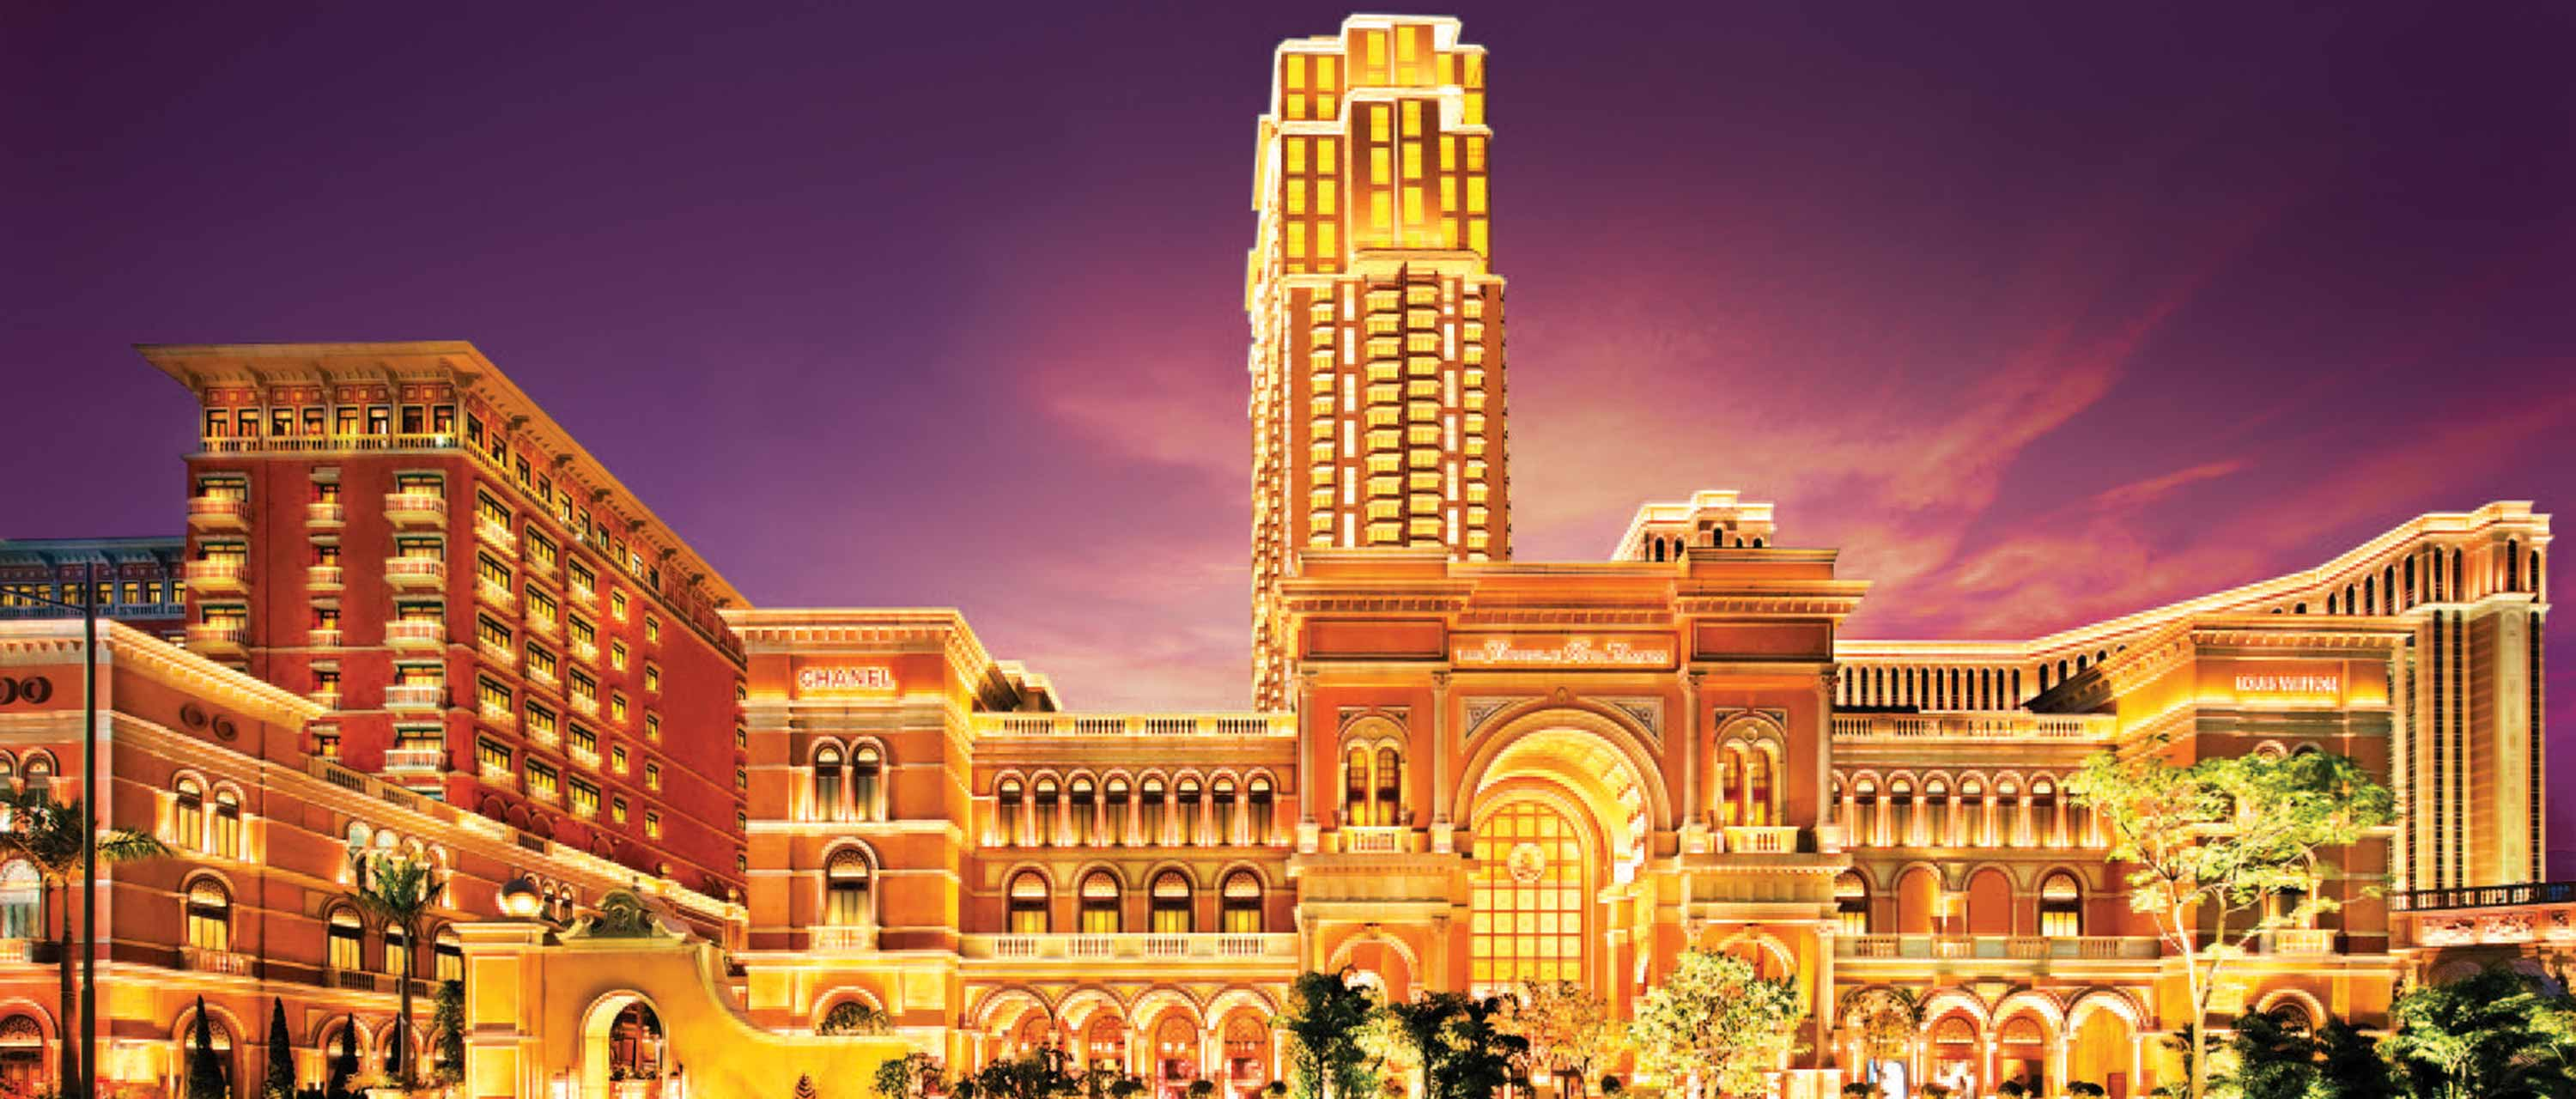 improving hospitality industry talents in macau Abstracthigh employee turnover is a continuing challenge for hospitality and tourism, notably in the tightly regulated labor market of macau where hotel room capacity is expanding rapidly.